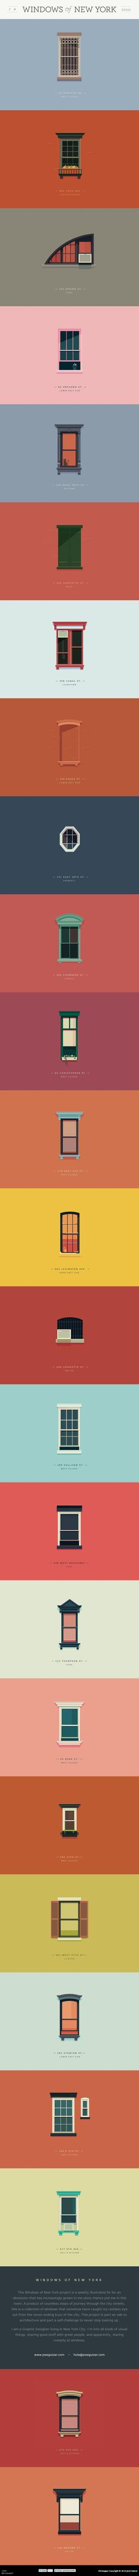 Windows of New York #website #graphics #illustration